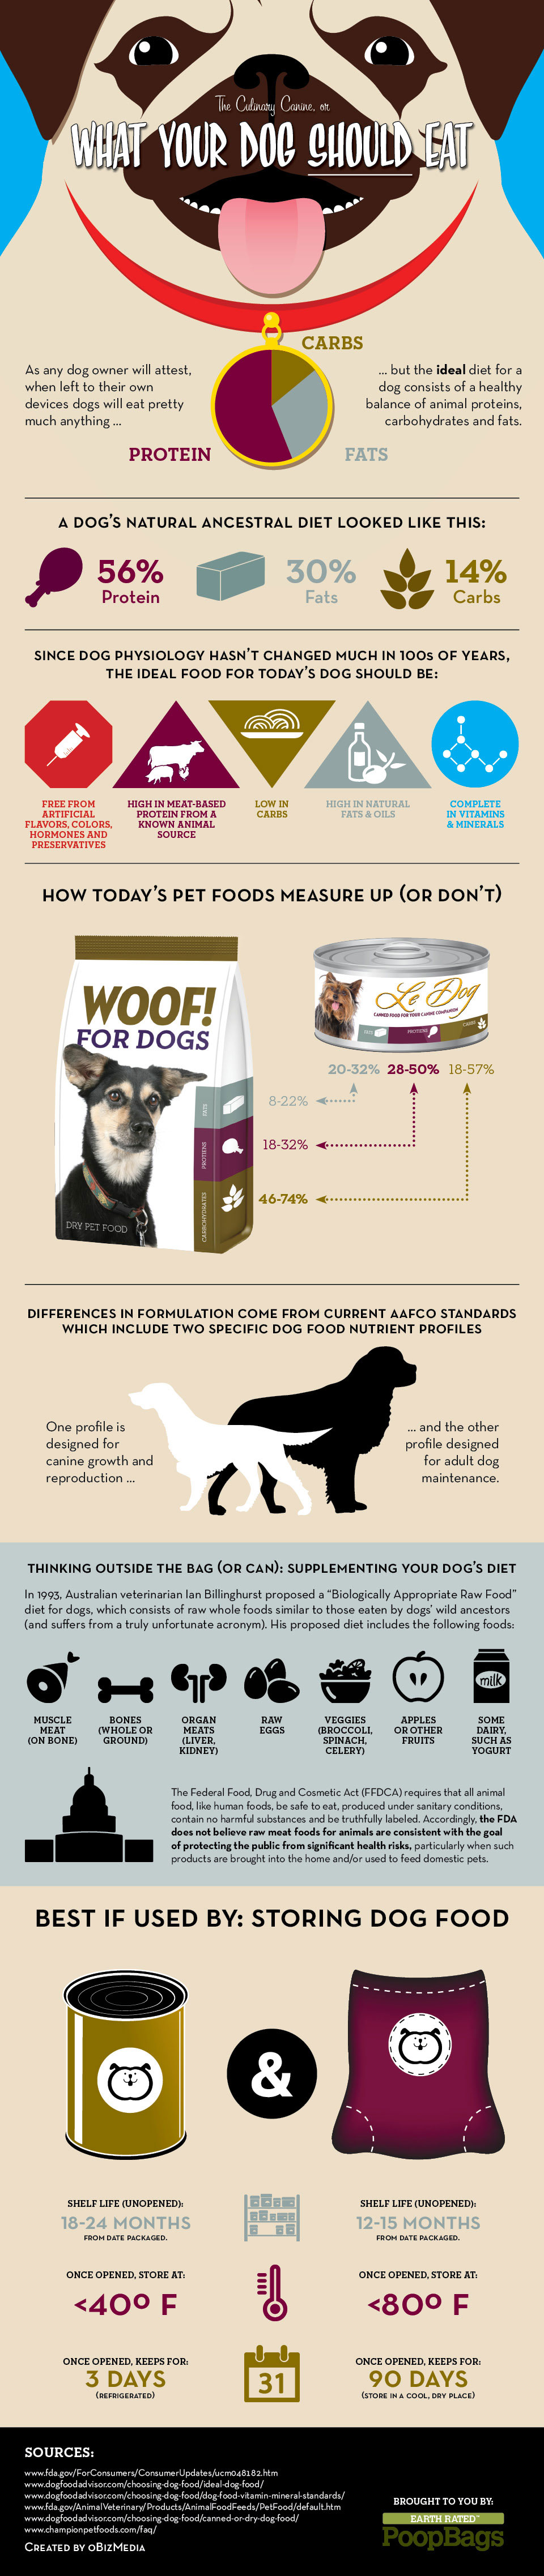 what-your-dog-shoul-eat-canine-ancestral-diet